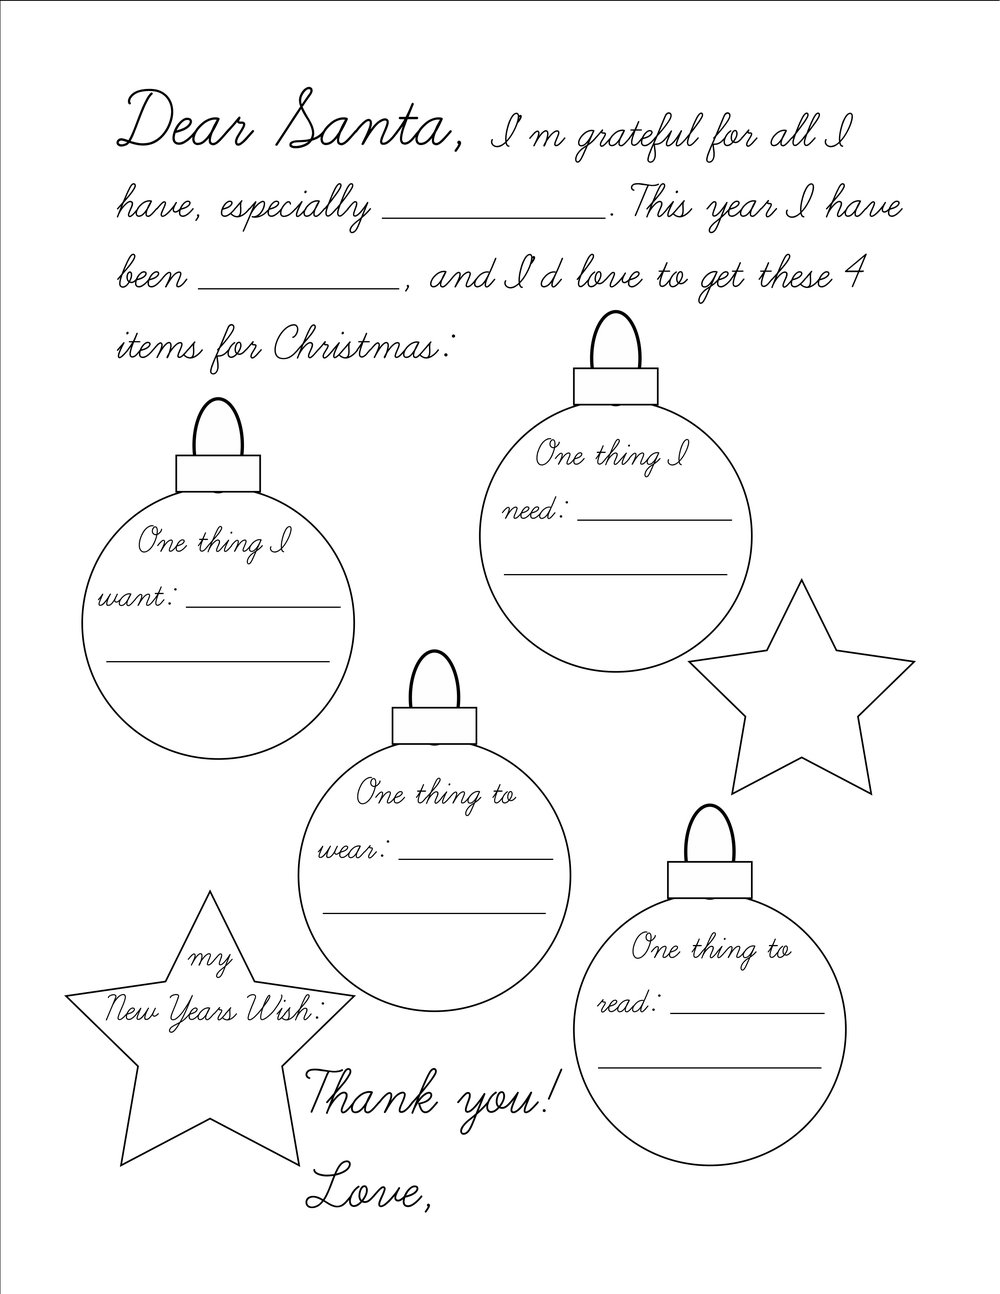 free printable wishlist worksheet